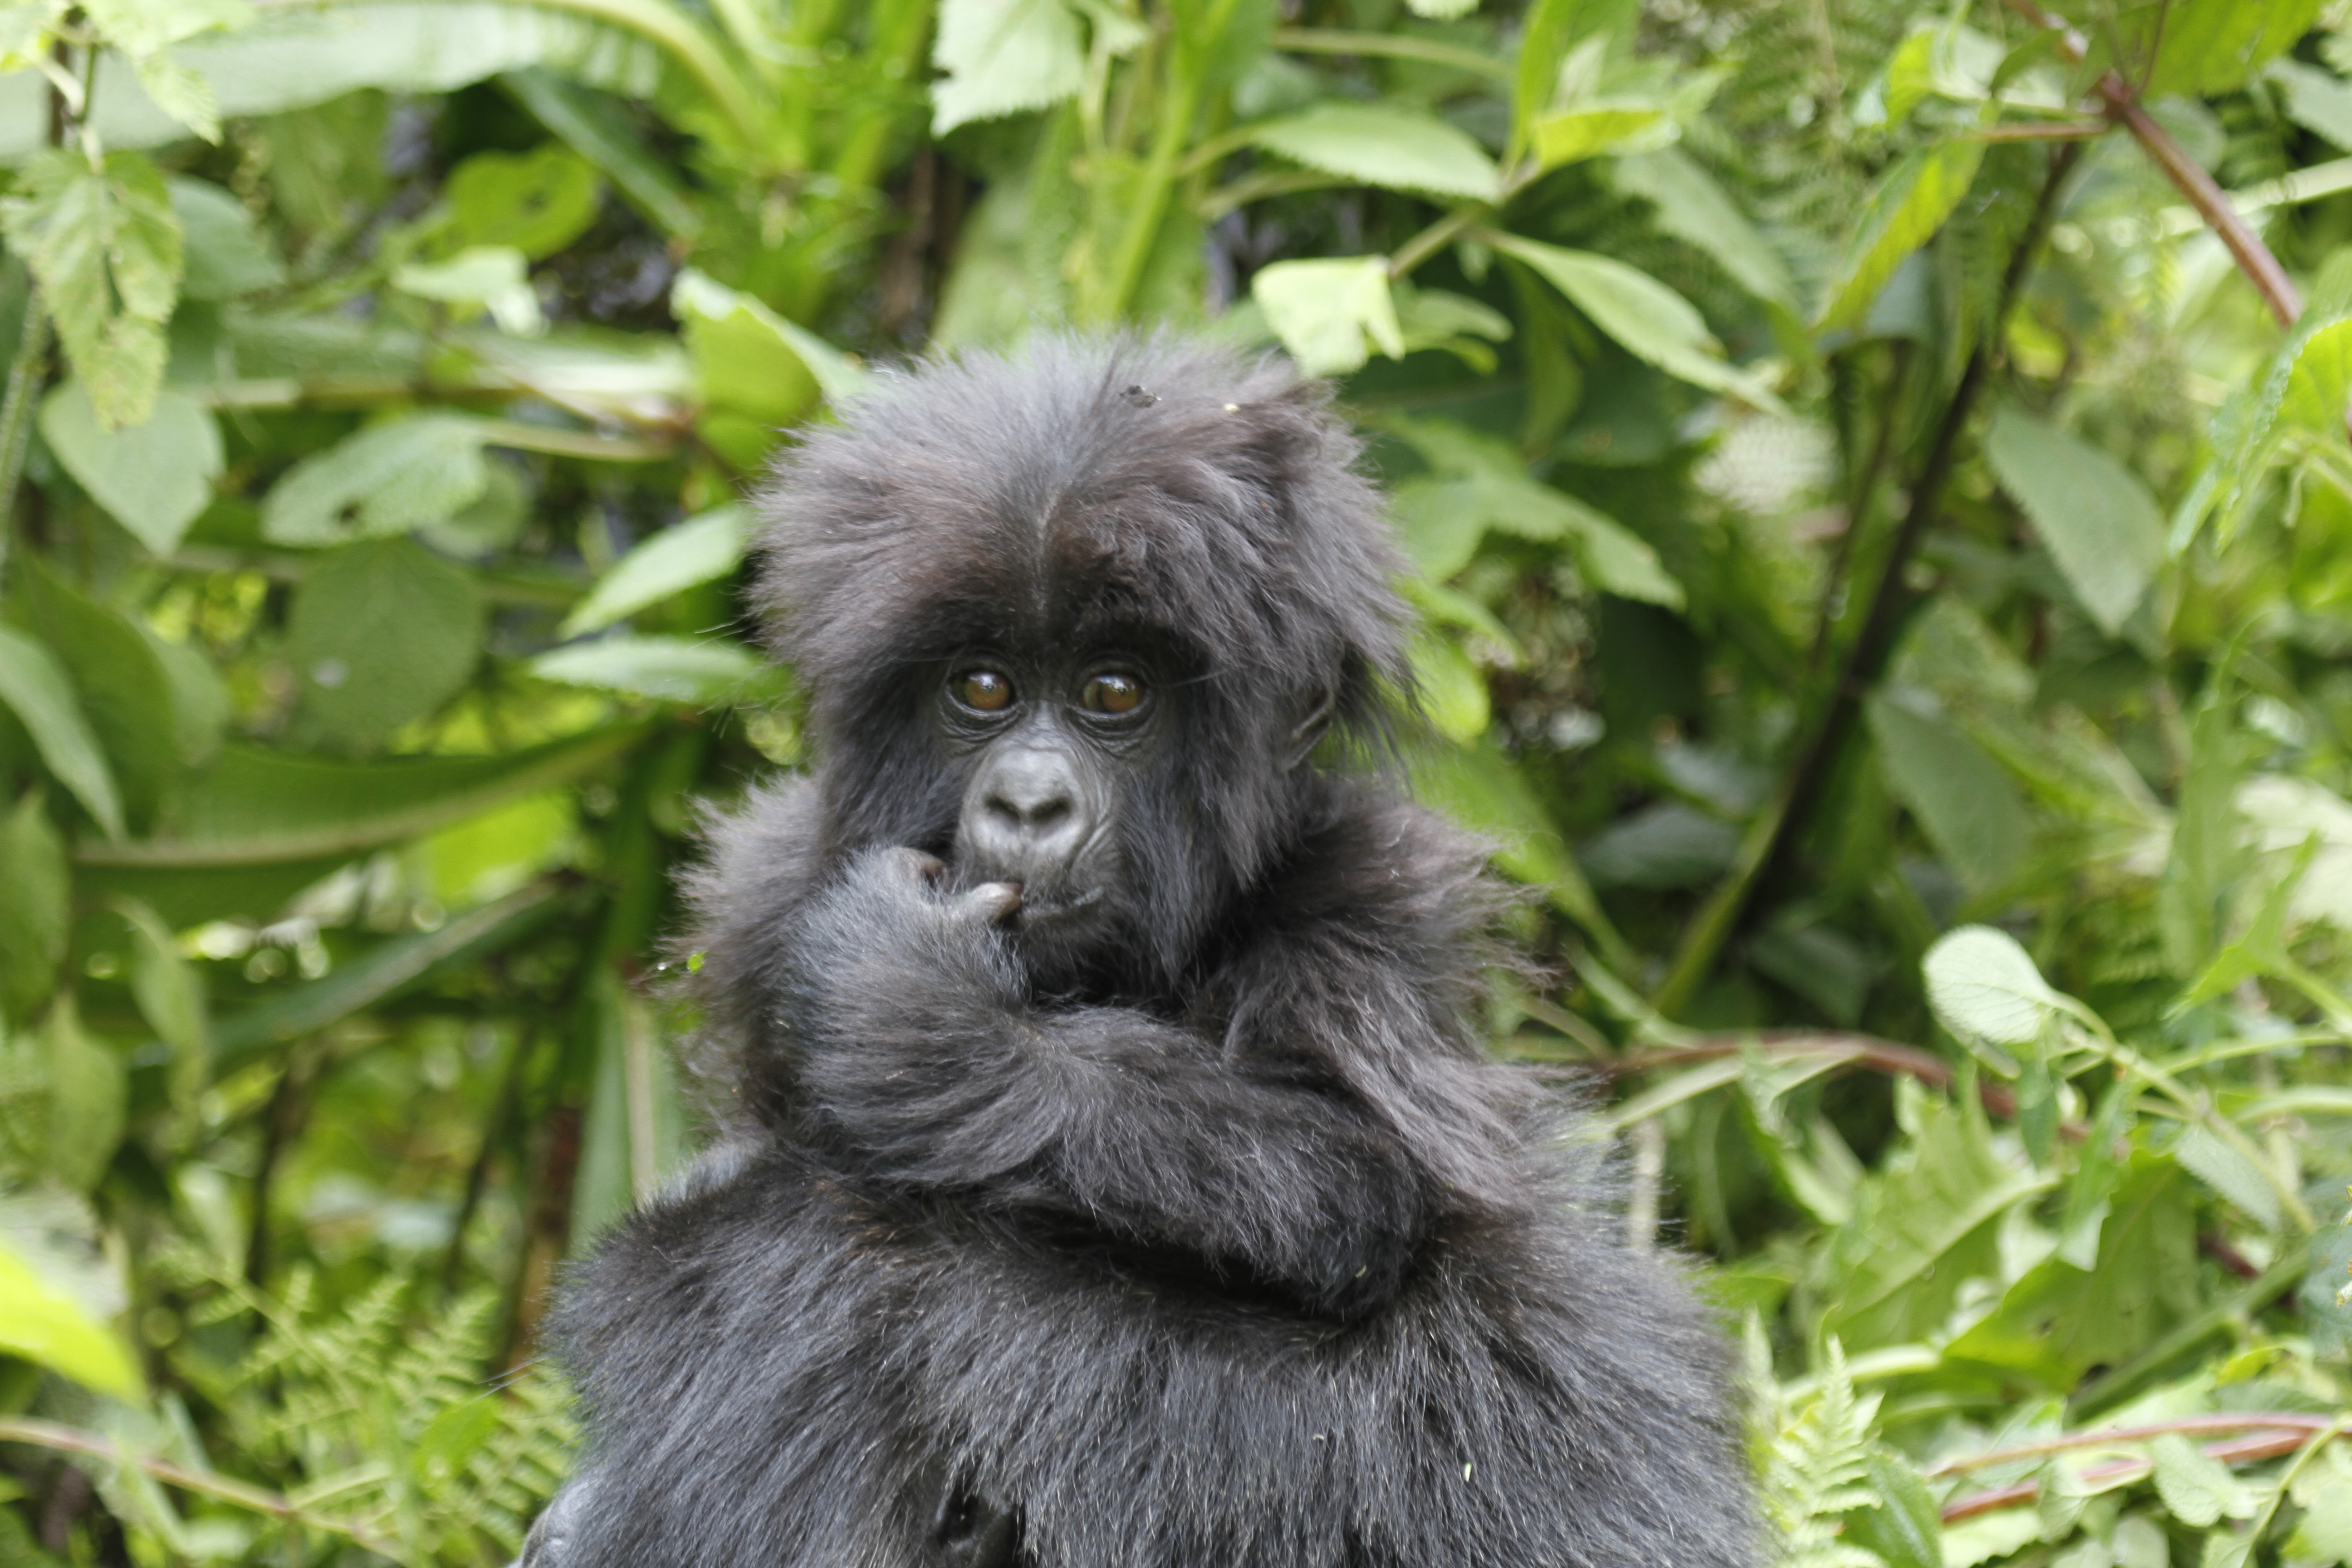 Mountain baby gorilla in Bwindi Forest